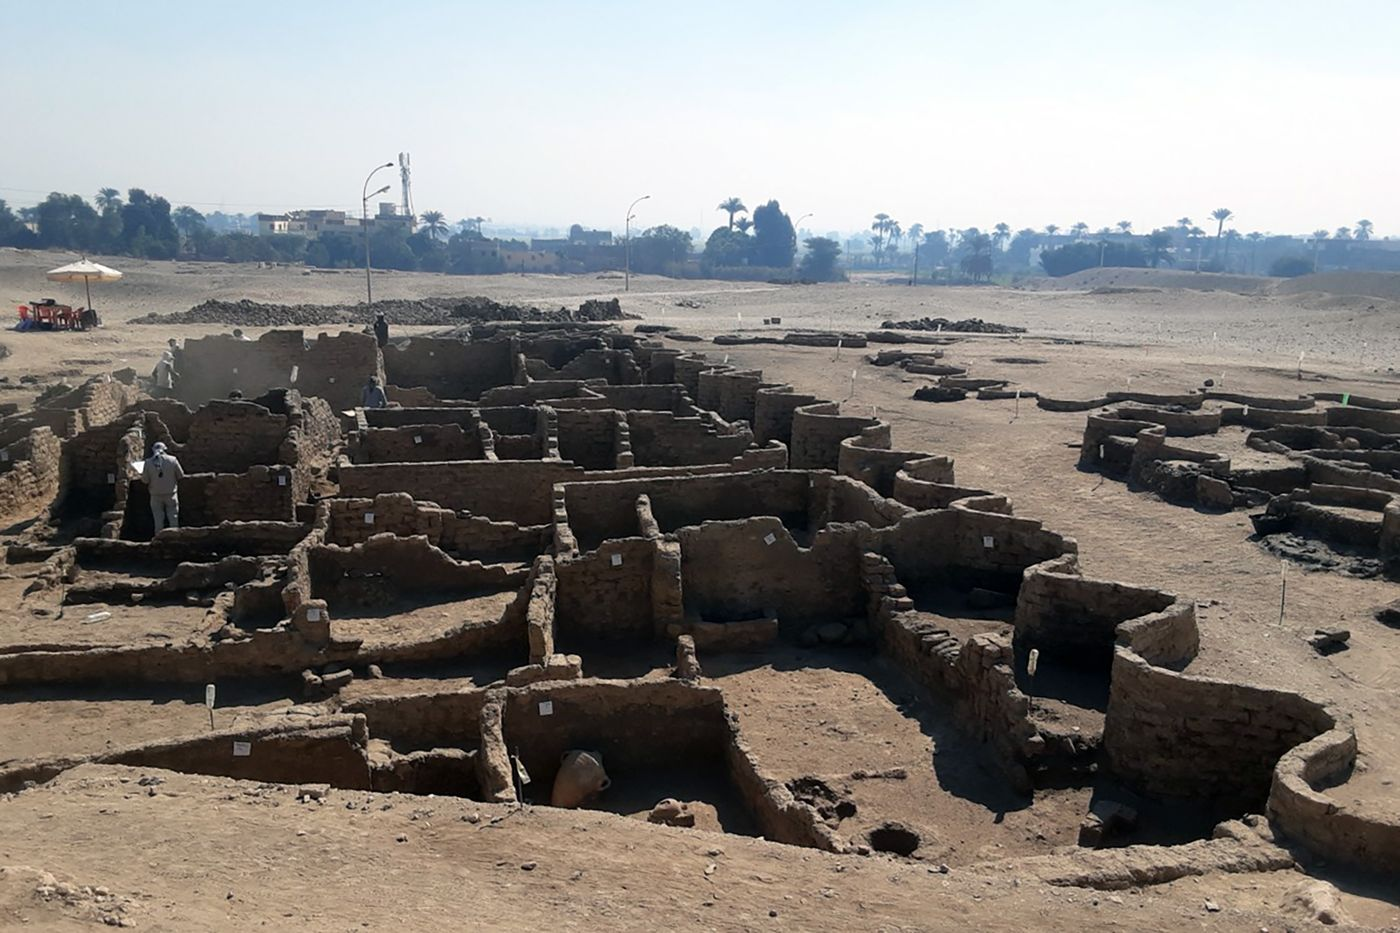 Egypt unveils 3,000-year-old 'lost' city near Luxor